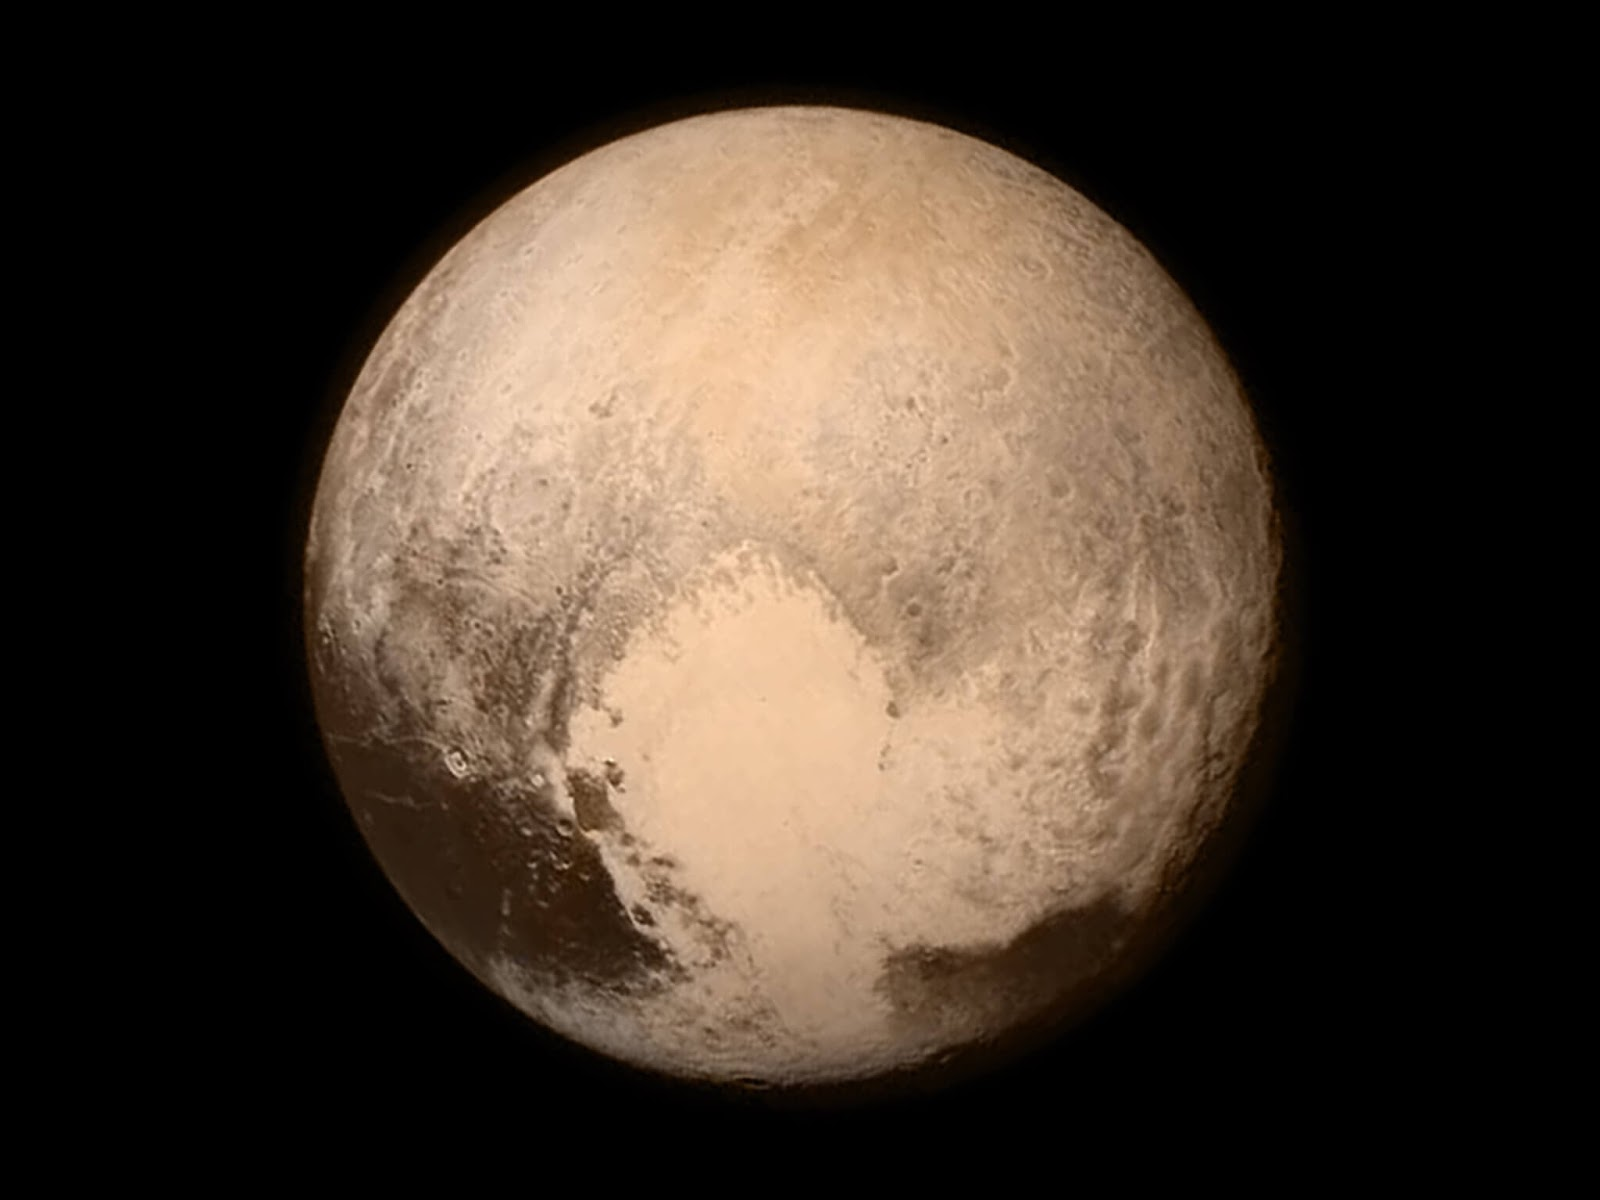 Pluto real pic